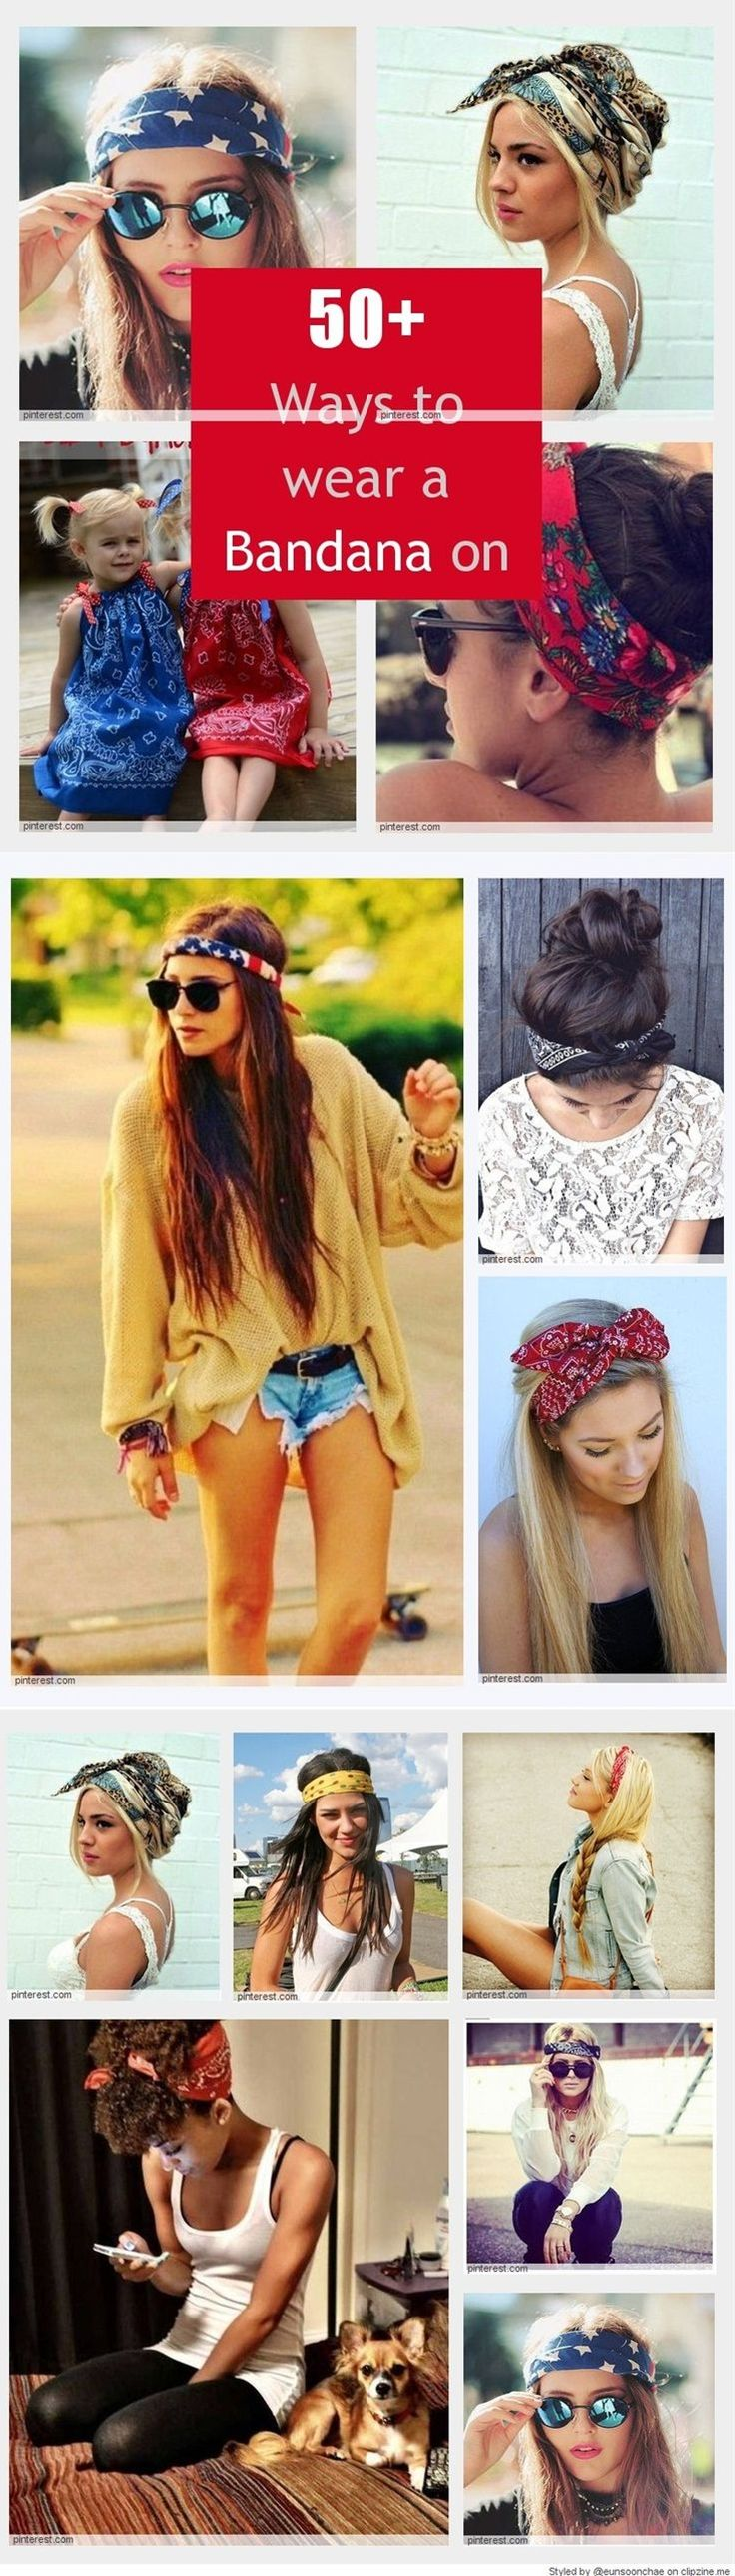 Cool ways to wear a Bandana                                                                                                                                                      Más